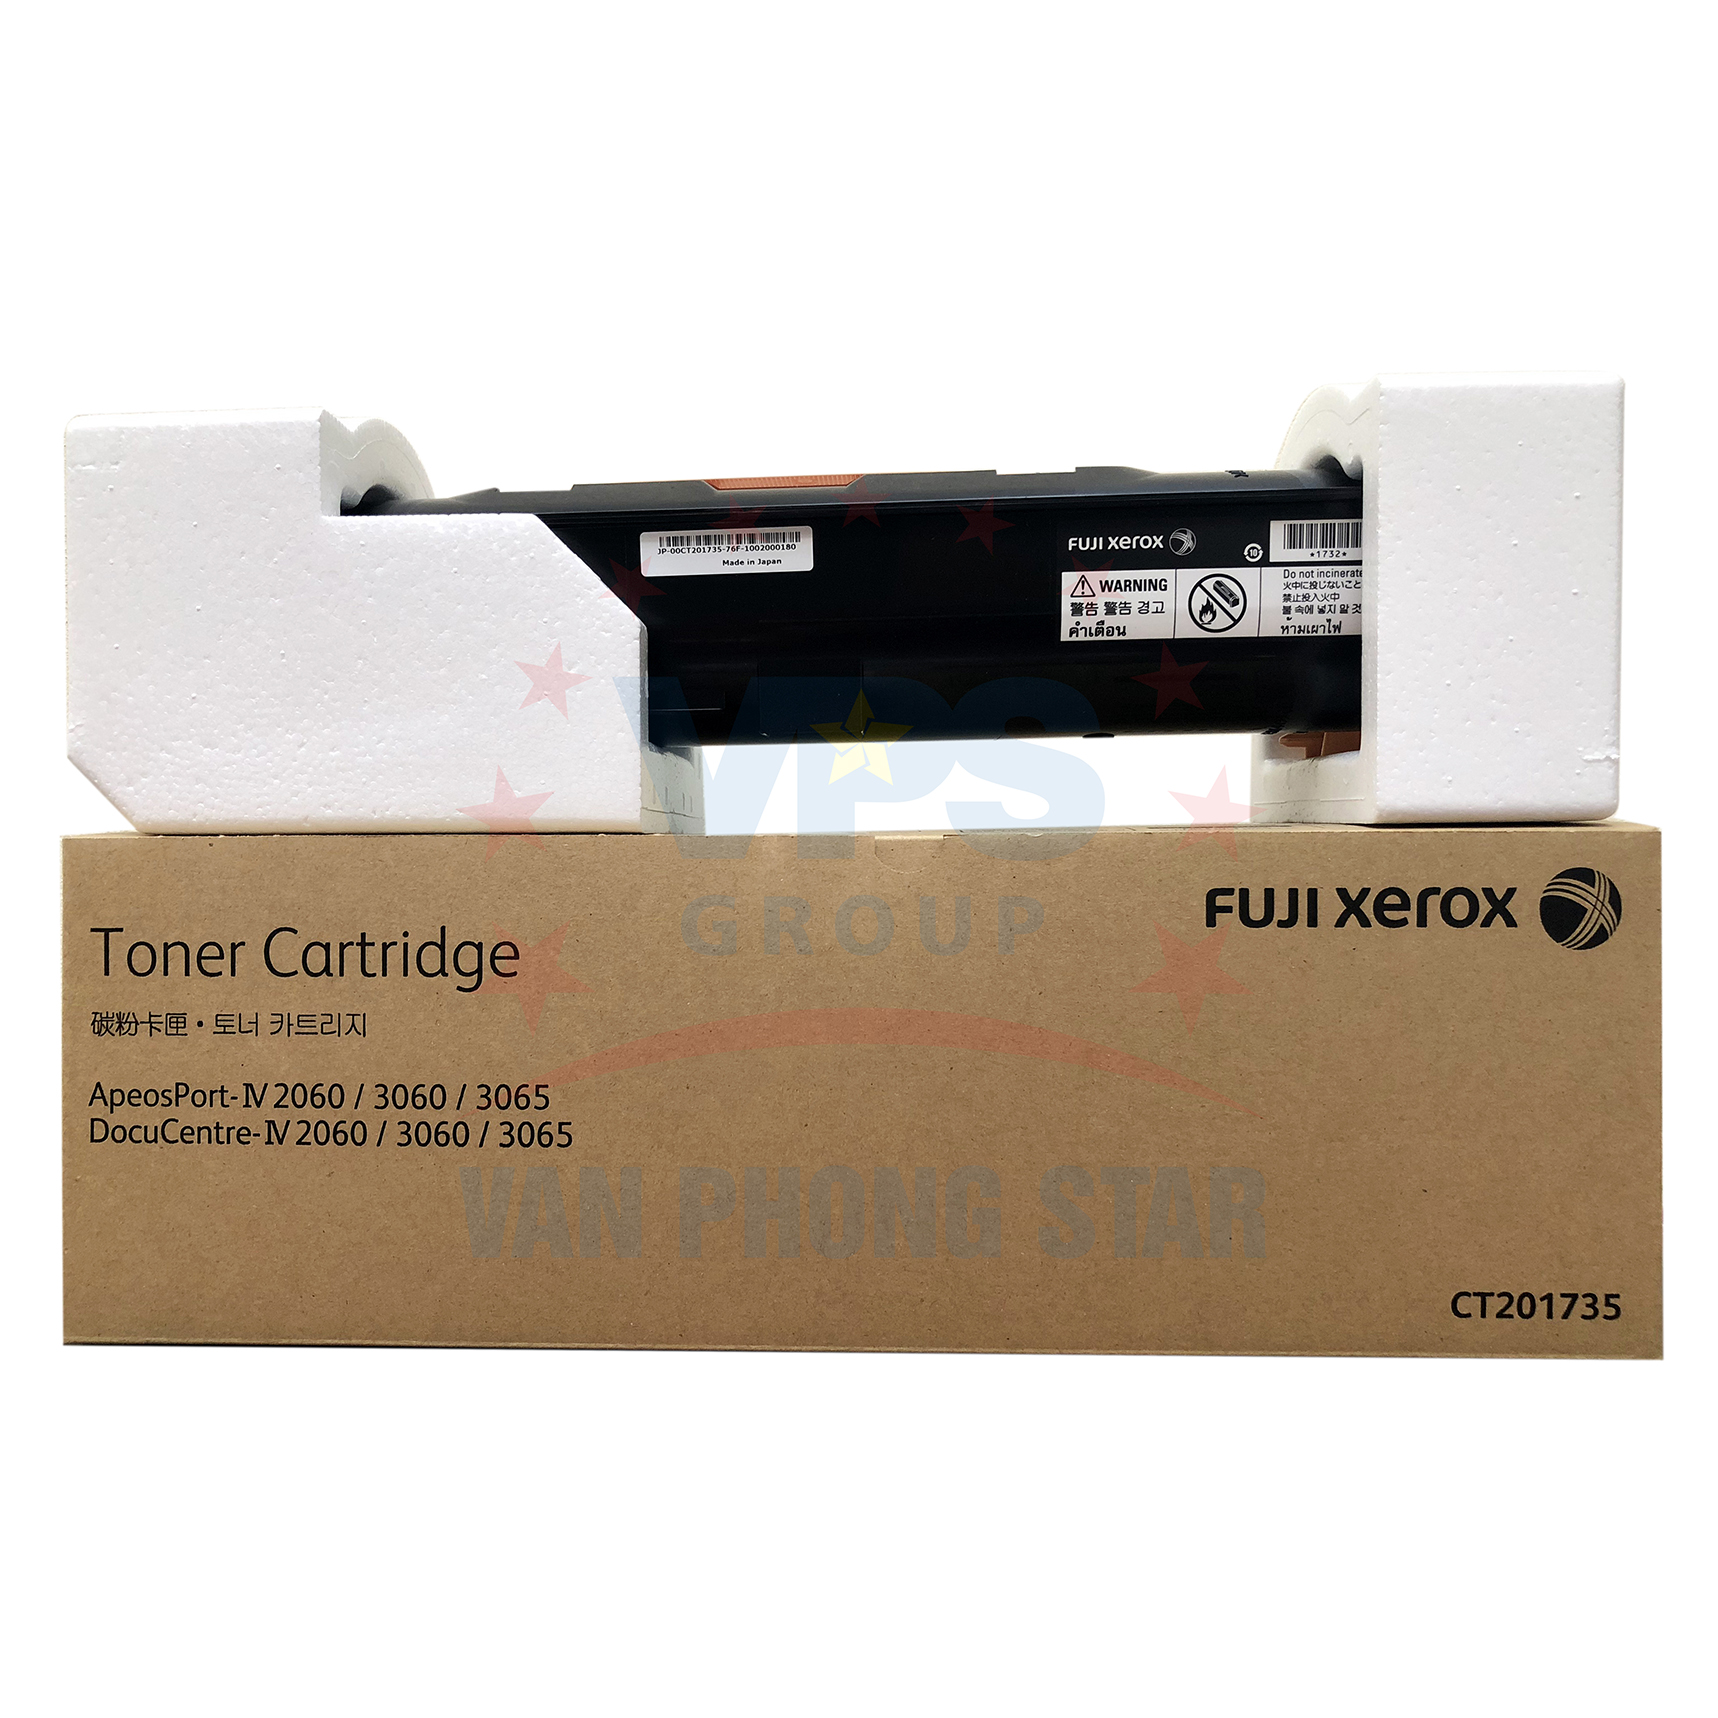 toner-cartridge-docucentre-iv-2060-3060-3065